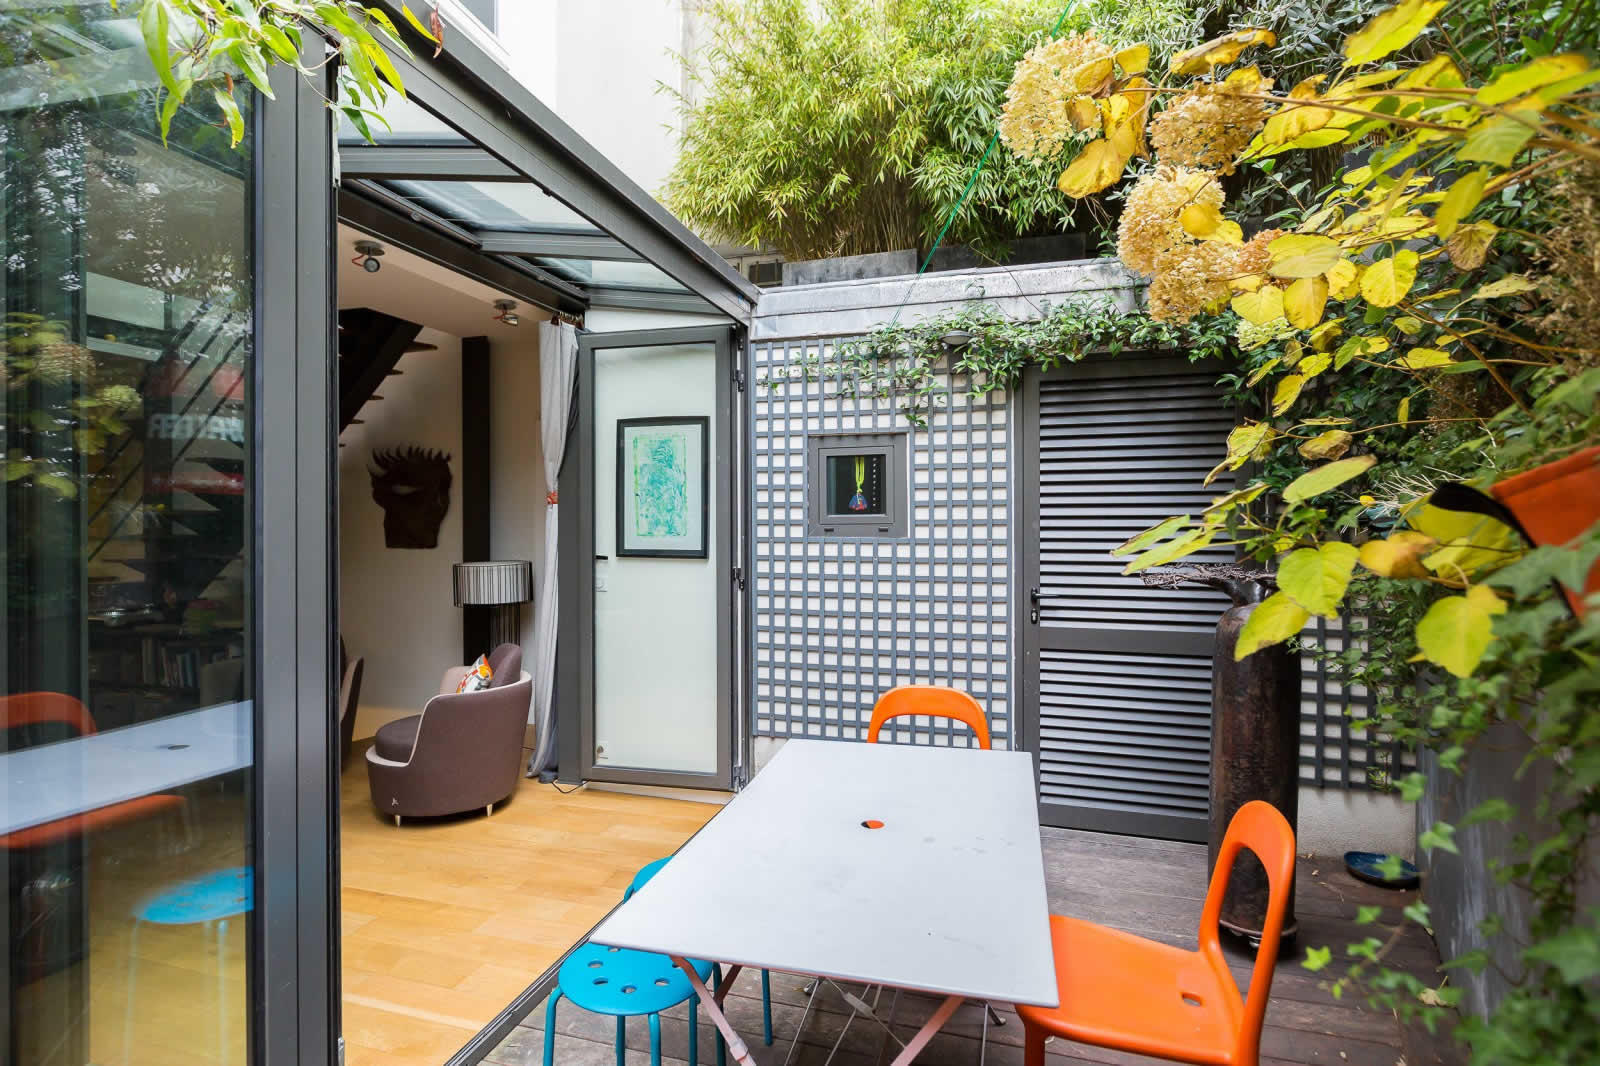 rare-contemporary-design-house-for-sale-montmartre-terrace-large-windows-vaulted-cellar